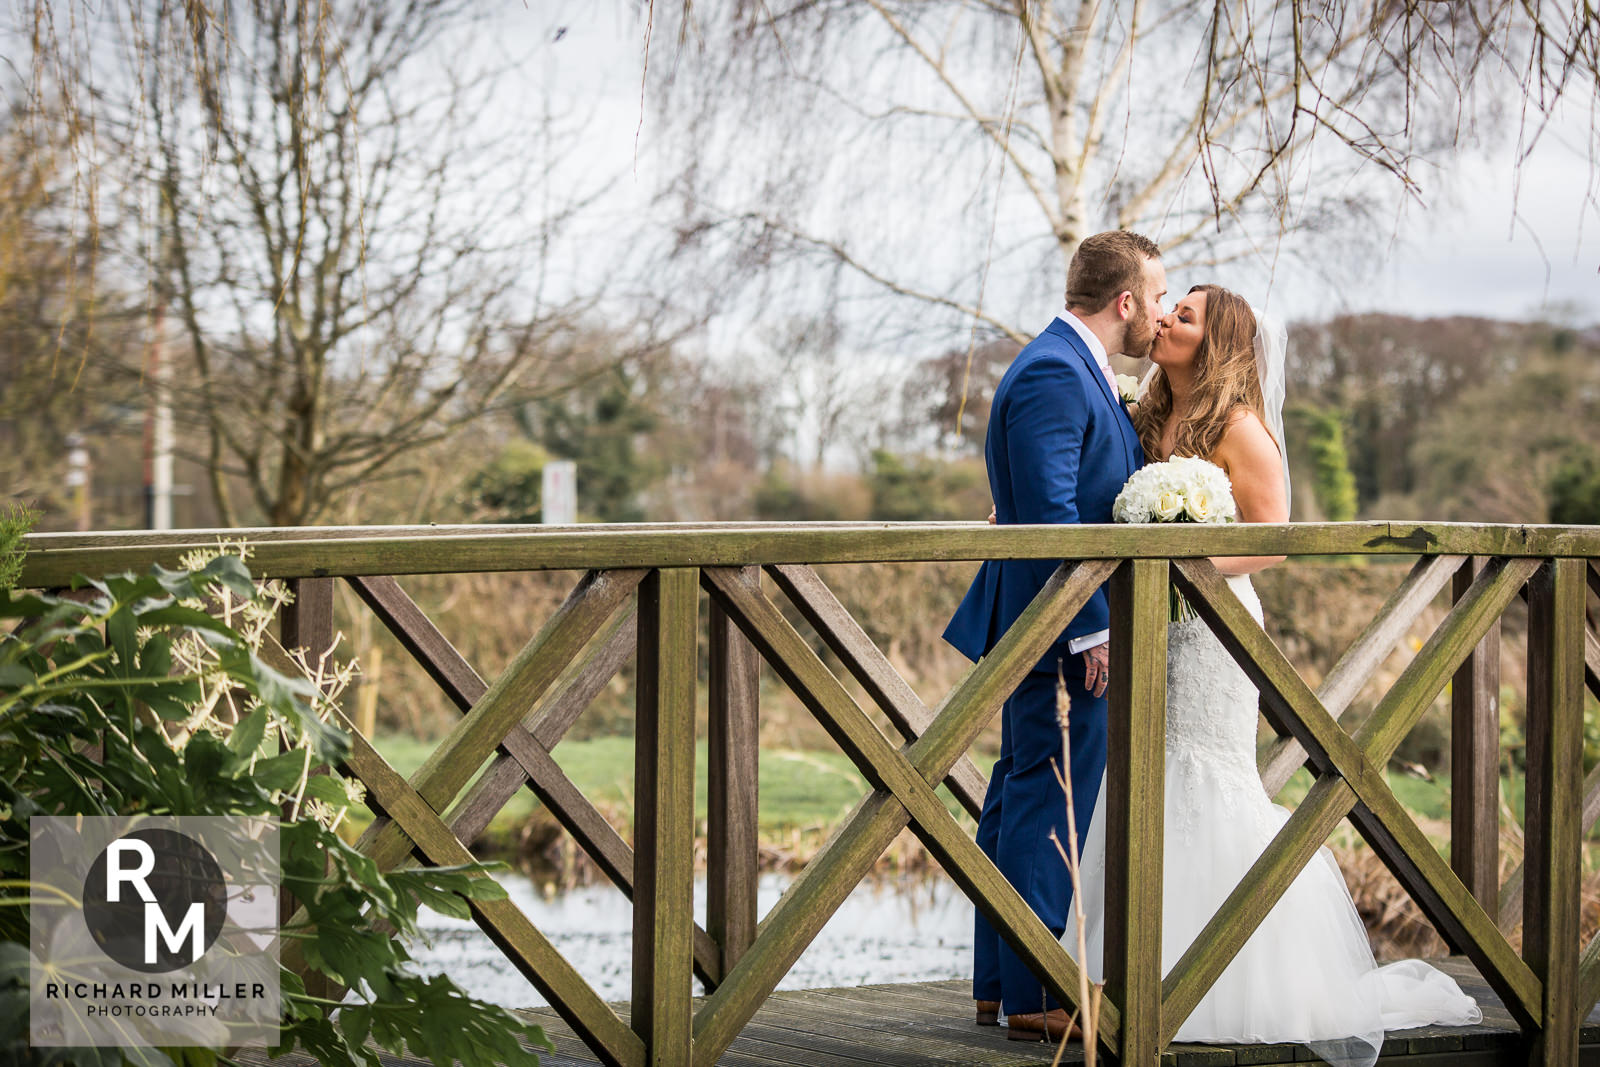 Craig Sharnah Web 195 - Grosvenor Pulford Wedding Photographer - Craig & Sharnah